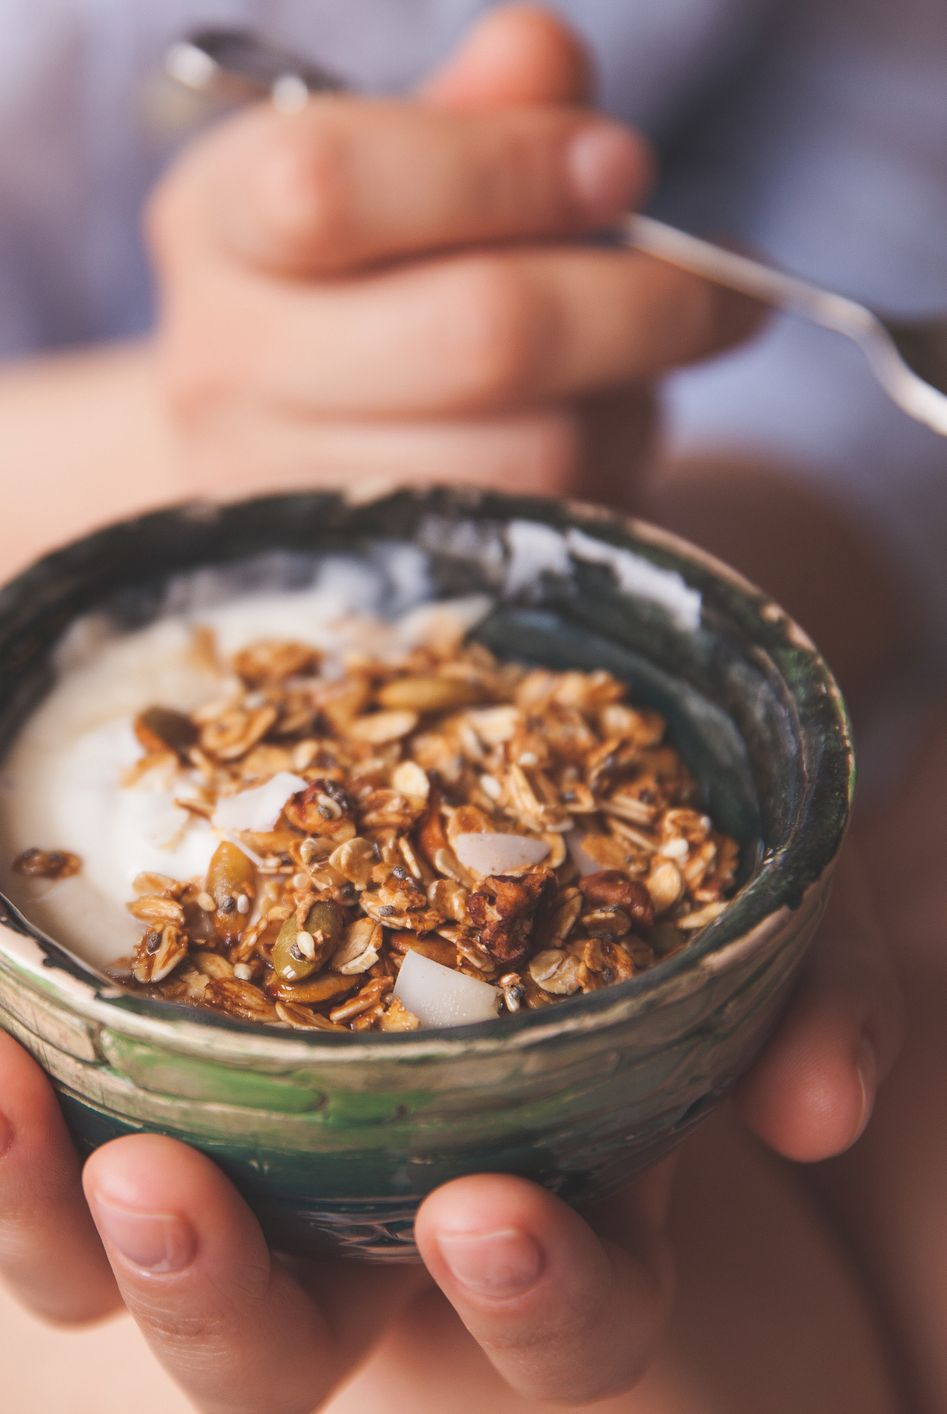 Young woman with muesli bowl. Girl eating breakfast cereals with nuts, pumpkin seeds, oats and yogurt in bowl. Girl holding homemade granola. Healthy snack or breakfst in the morning.